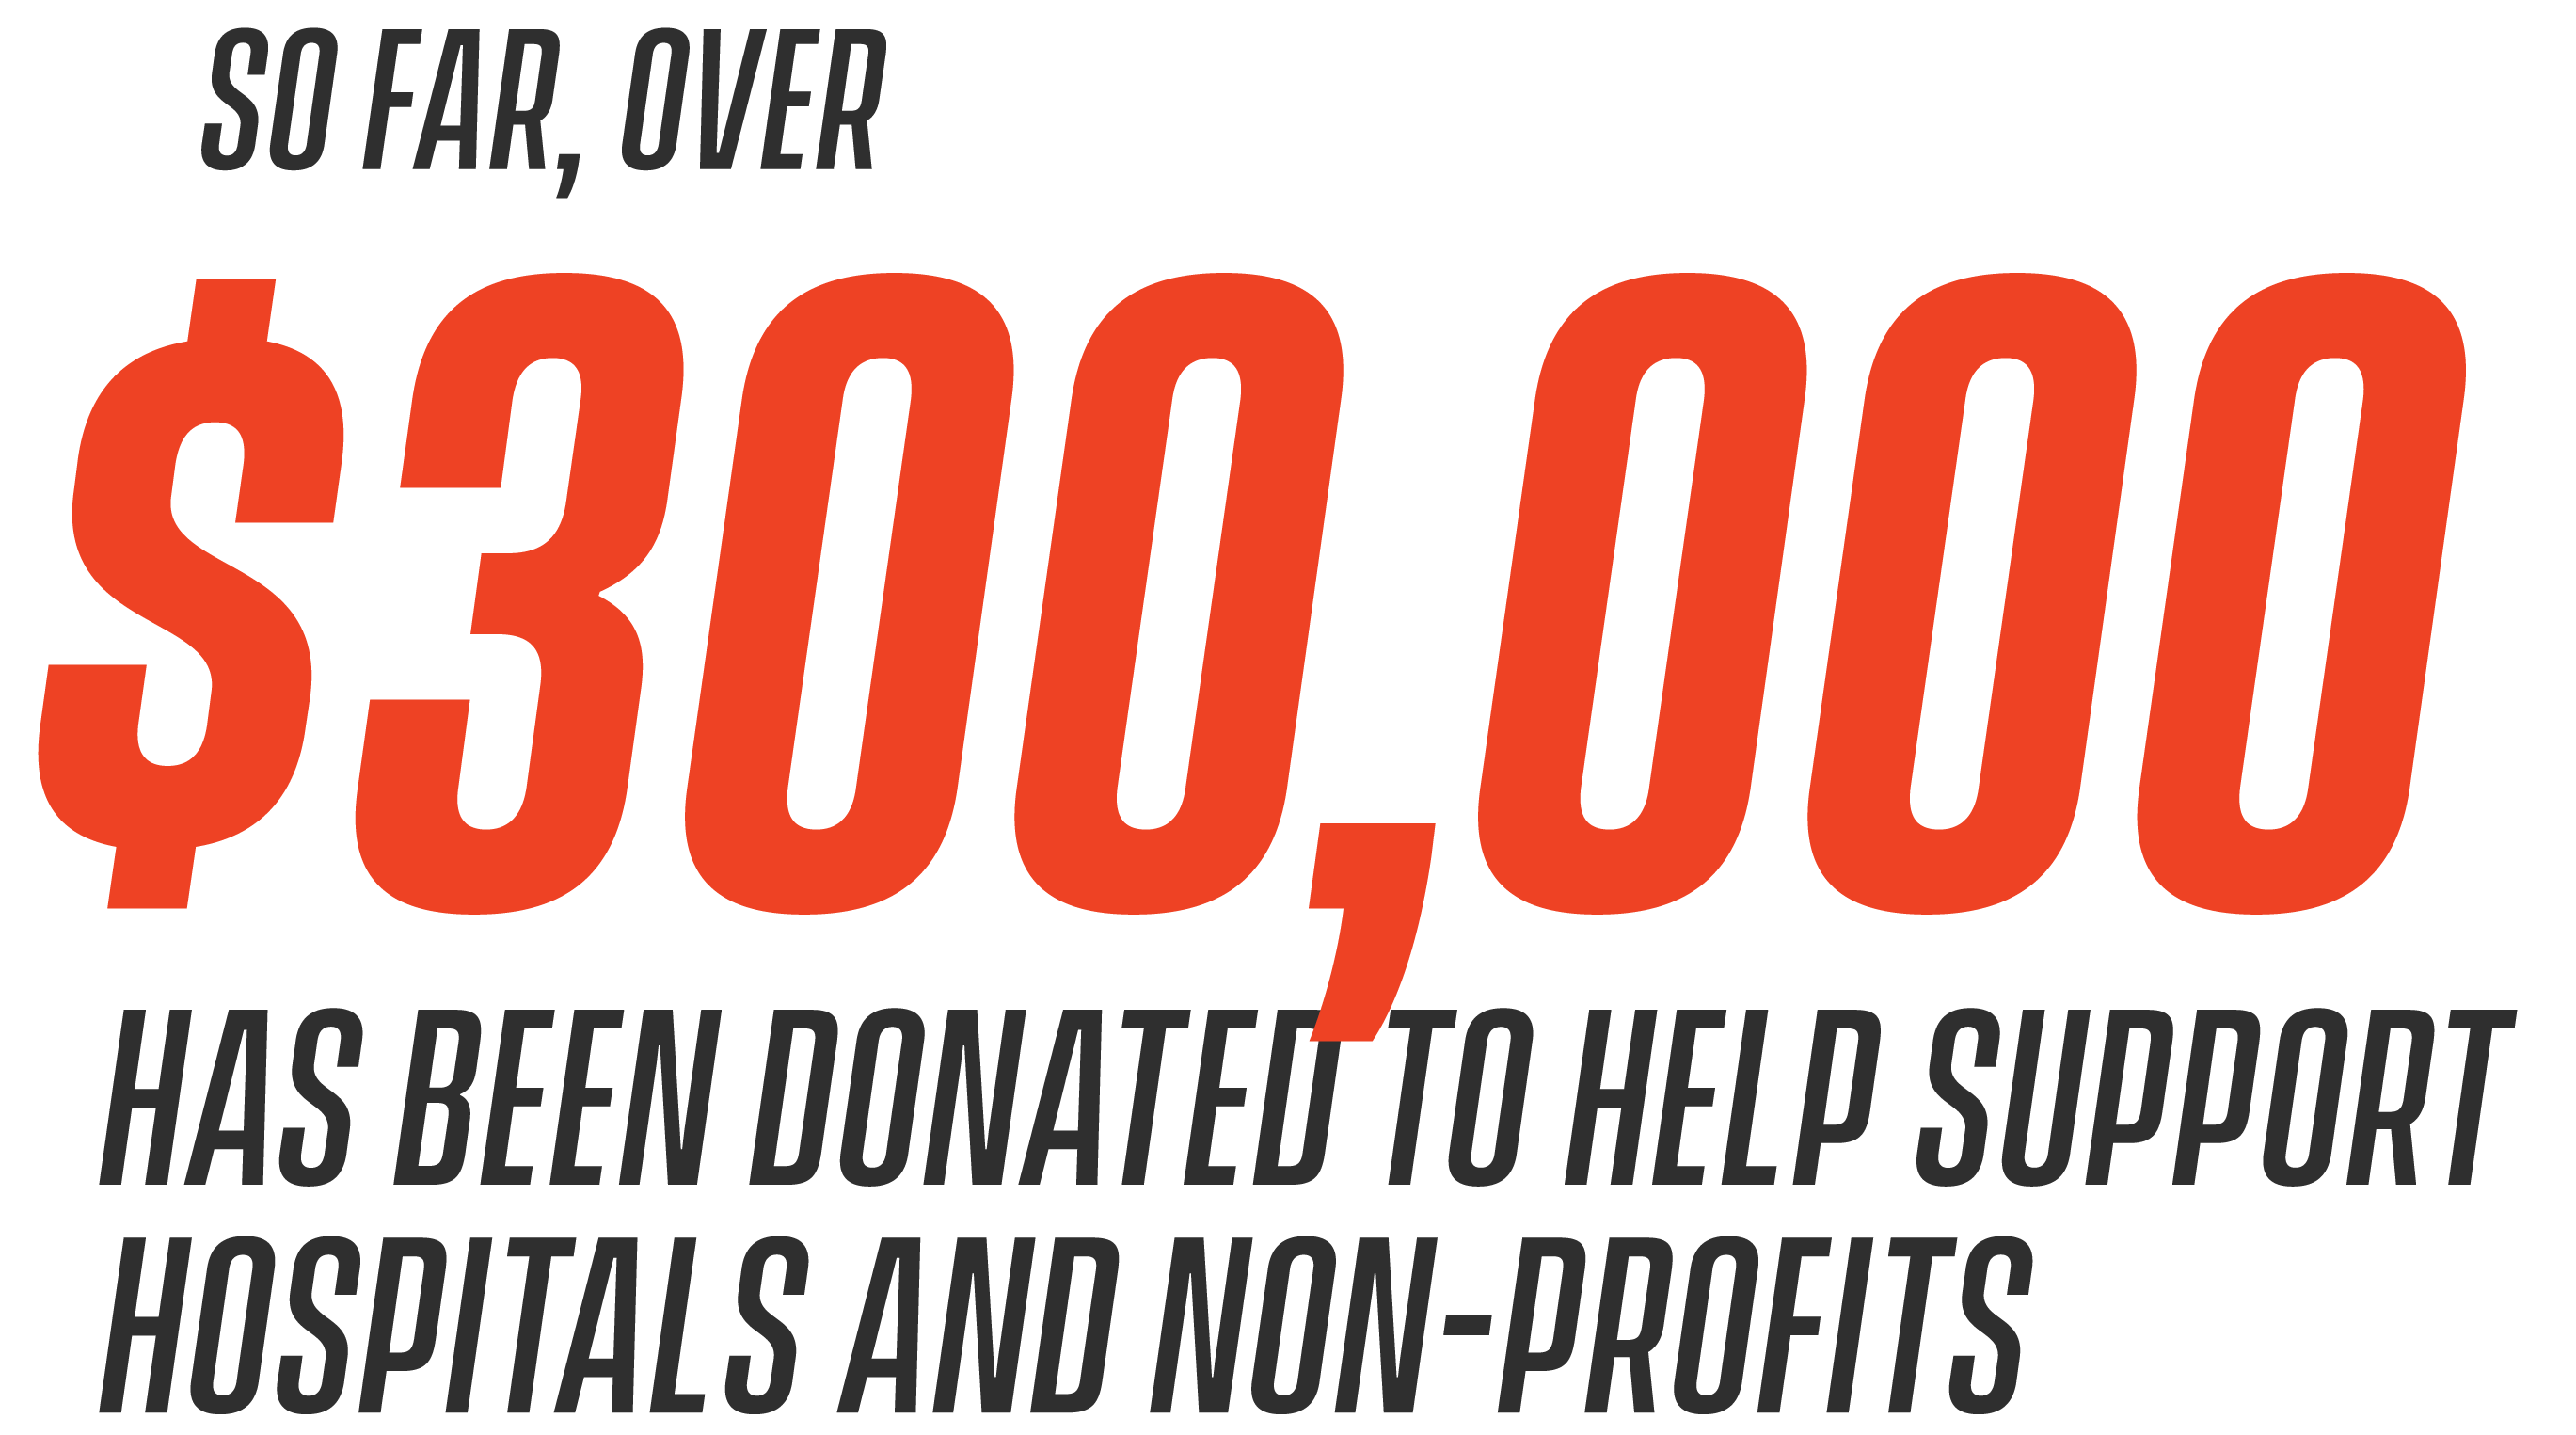 So far, over $300,000 has been donated to help support hospitals and non-profits